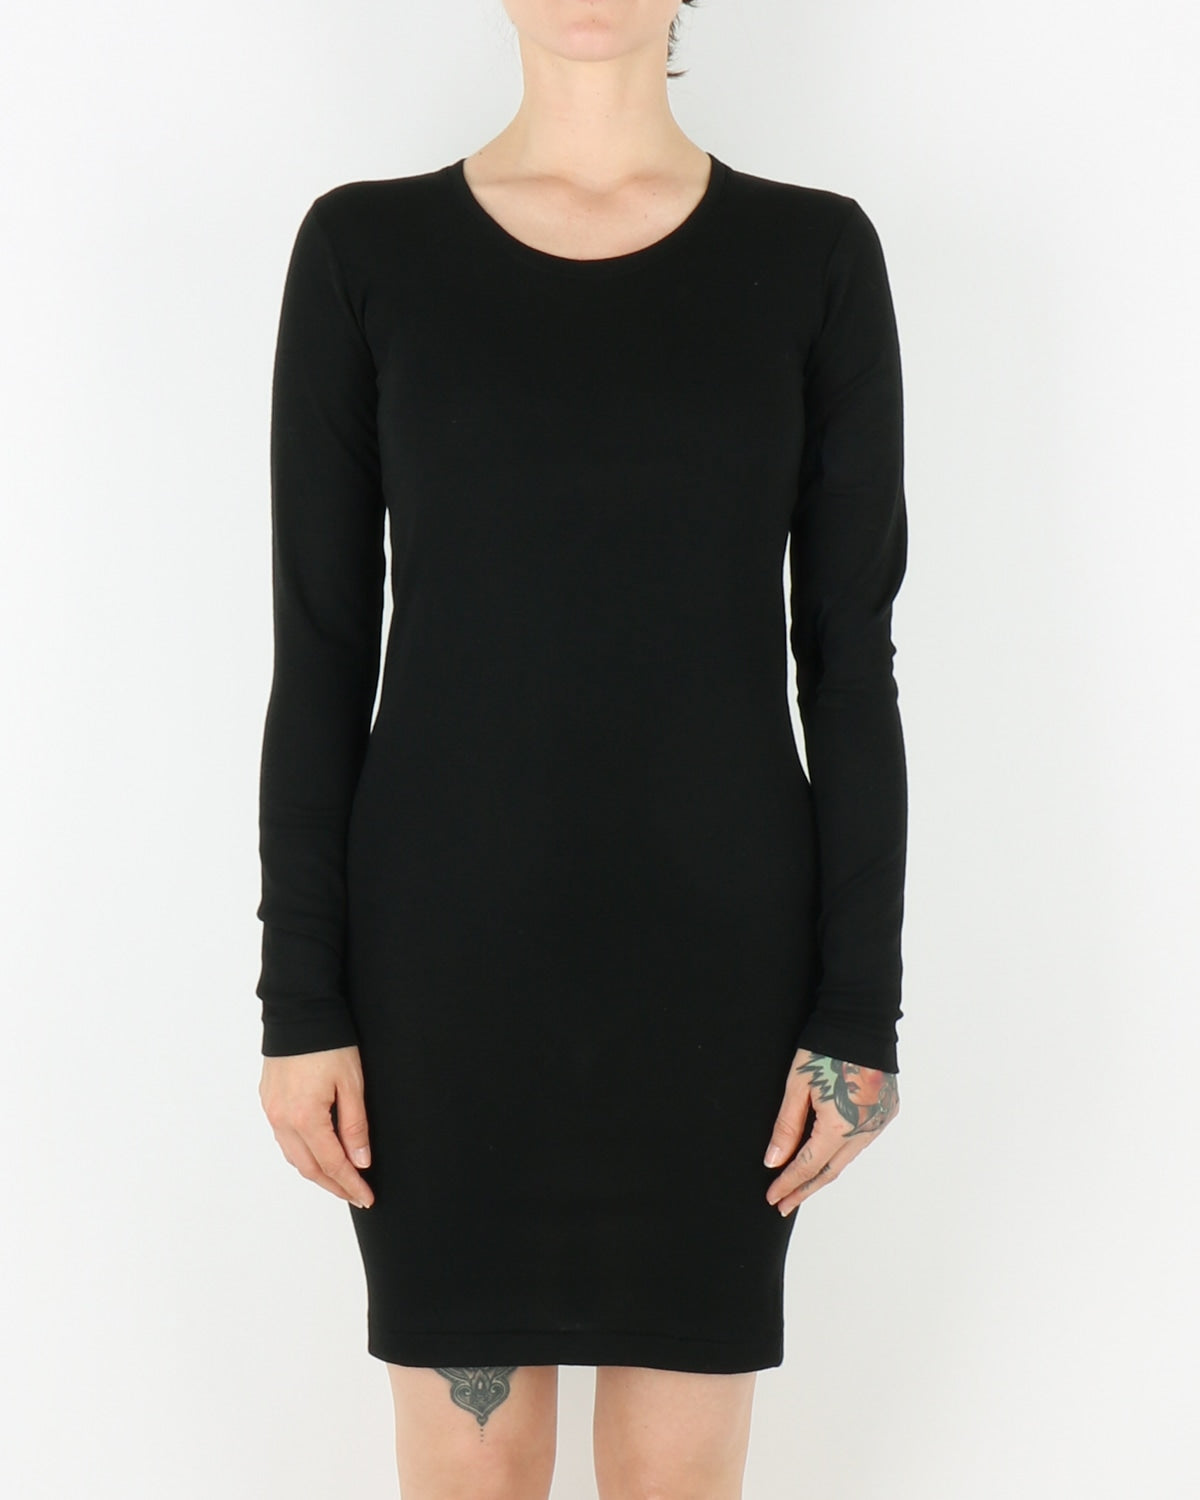 libertine libertine_trial dress_black_view_2_2